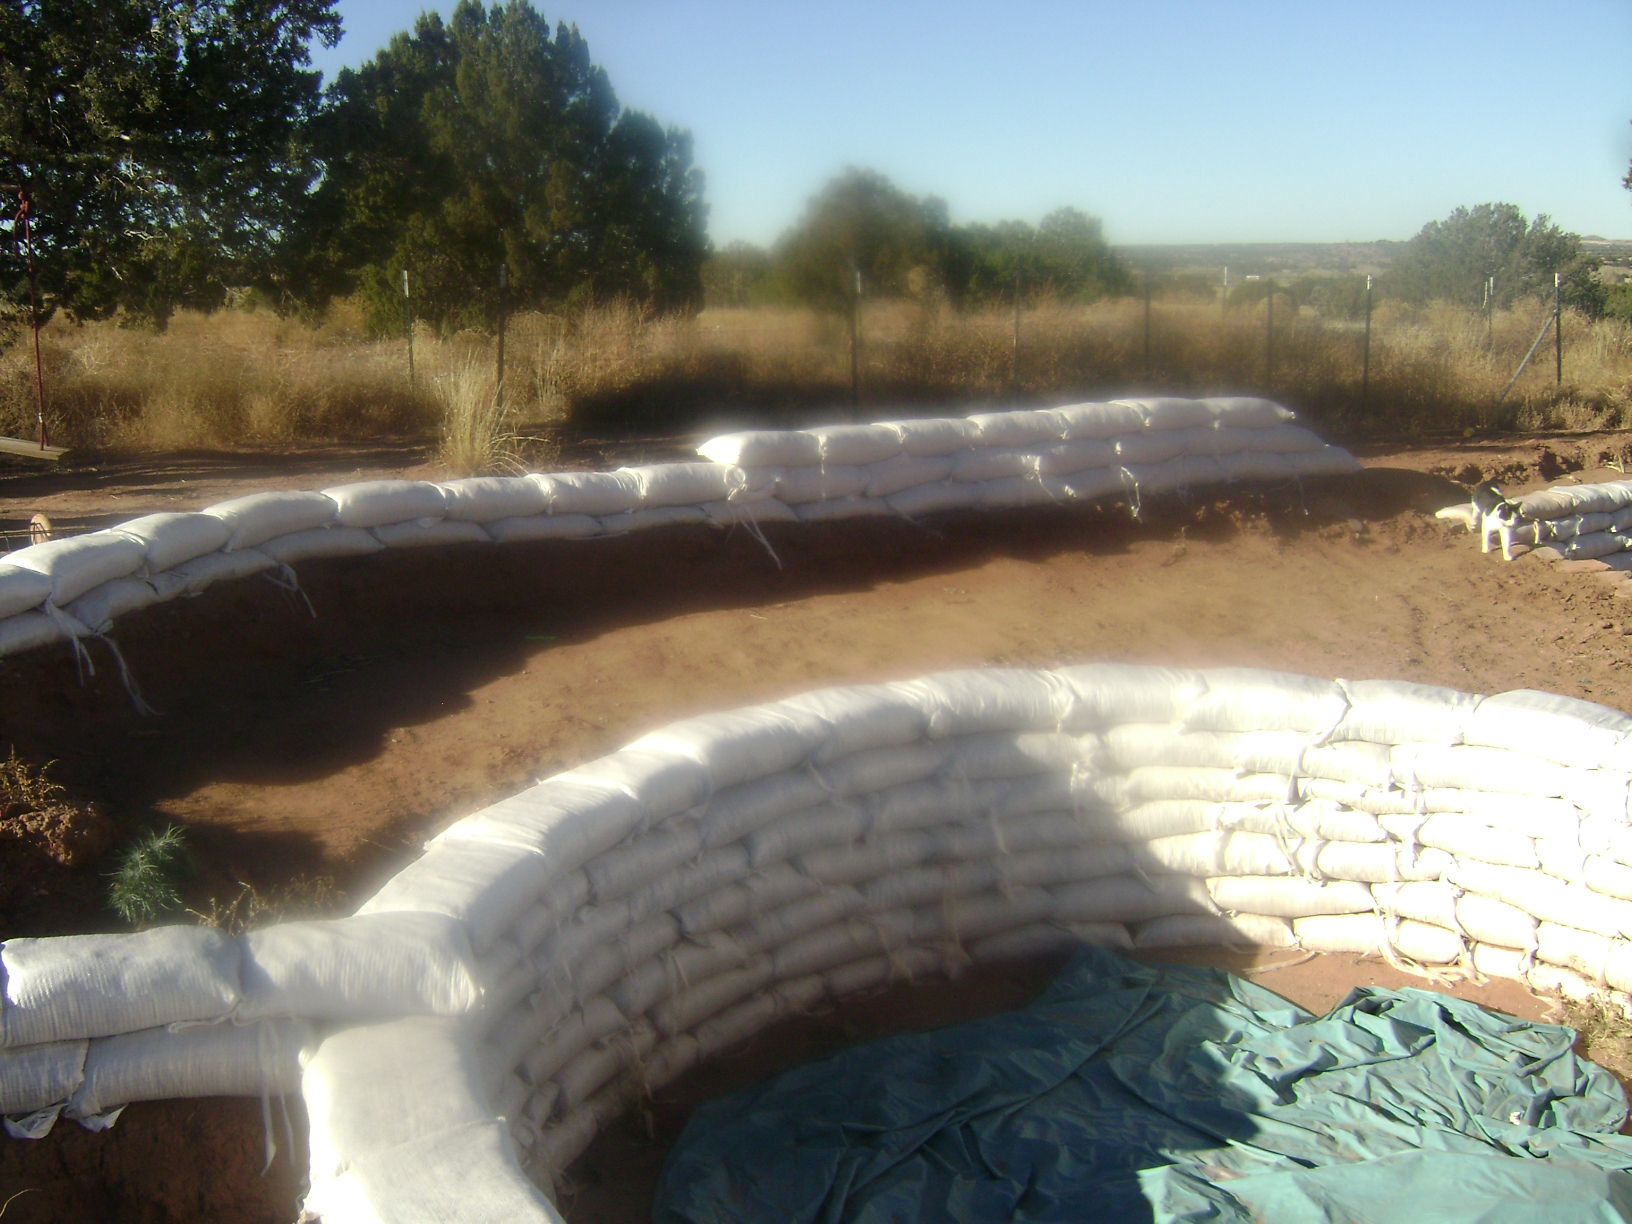 More pics of earth bag swimming pool ponds forum at permies for Pond swimming pool